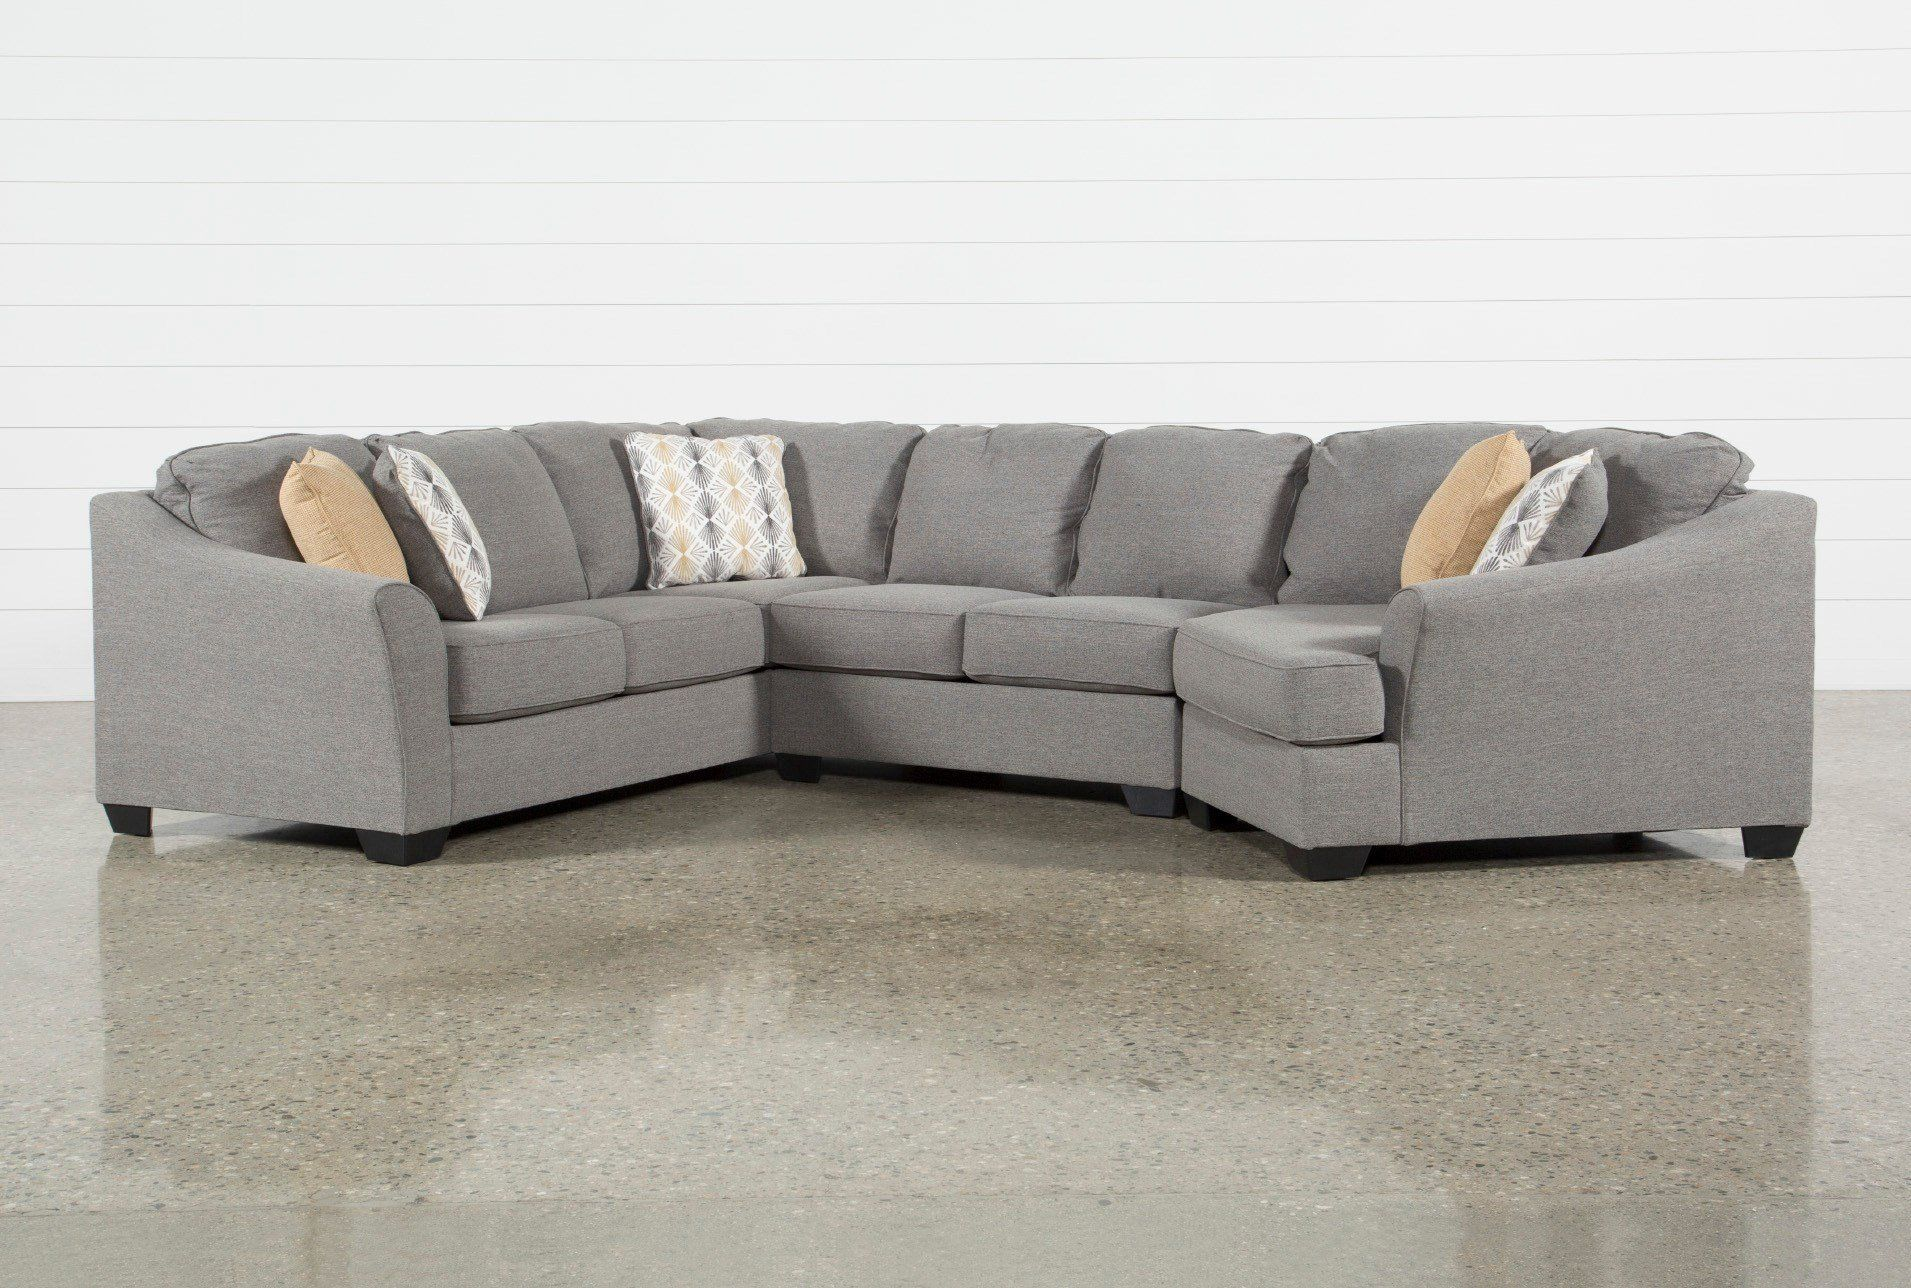 Best Ashley Fenton 3 Piece Sectional Sofa With Right Arm Facing 640 x 480